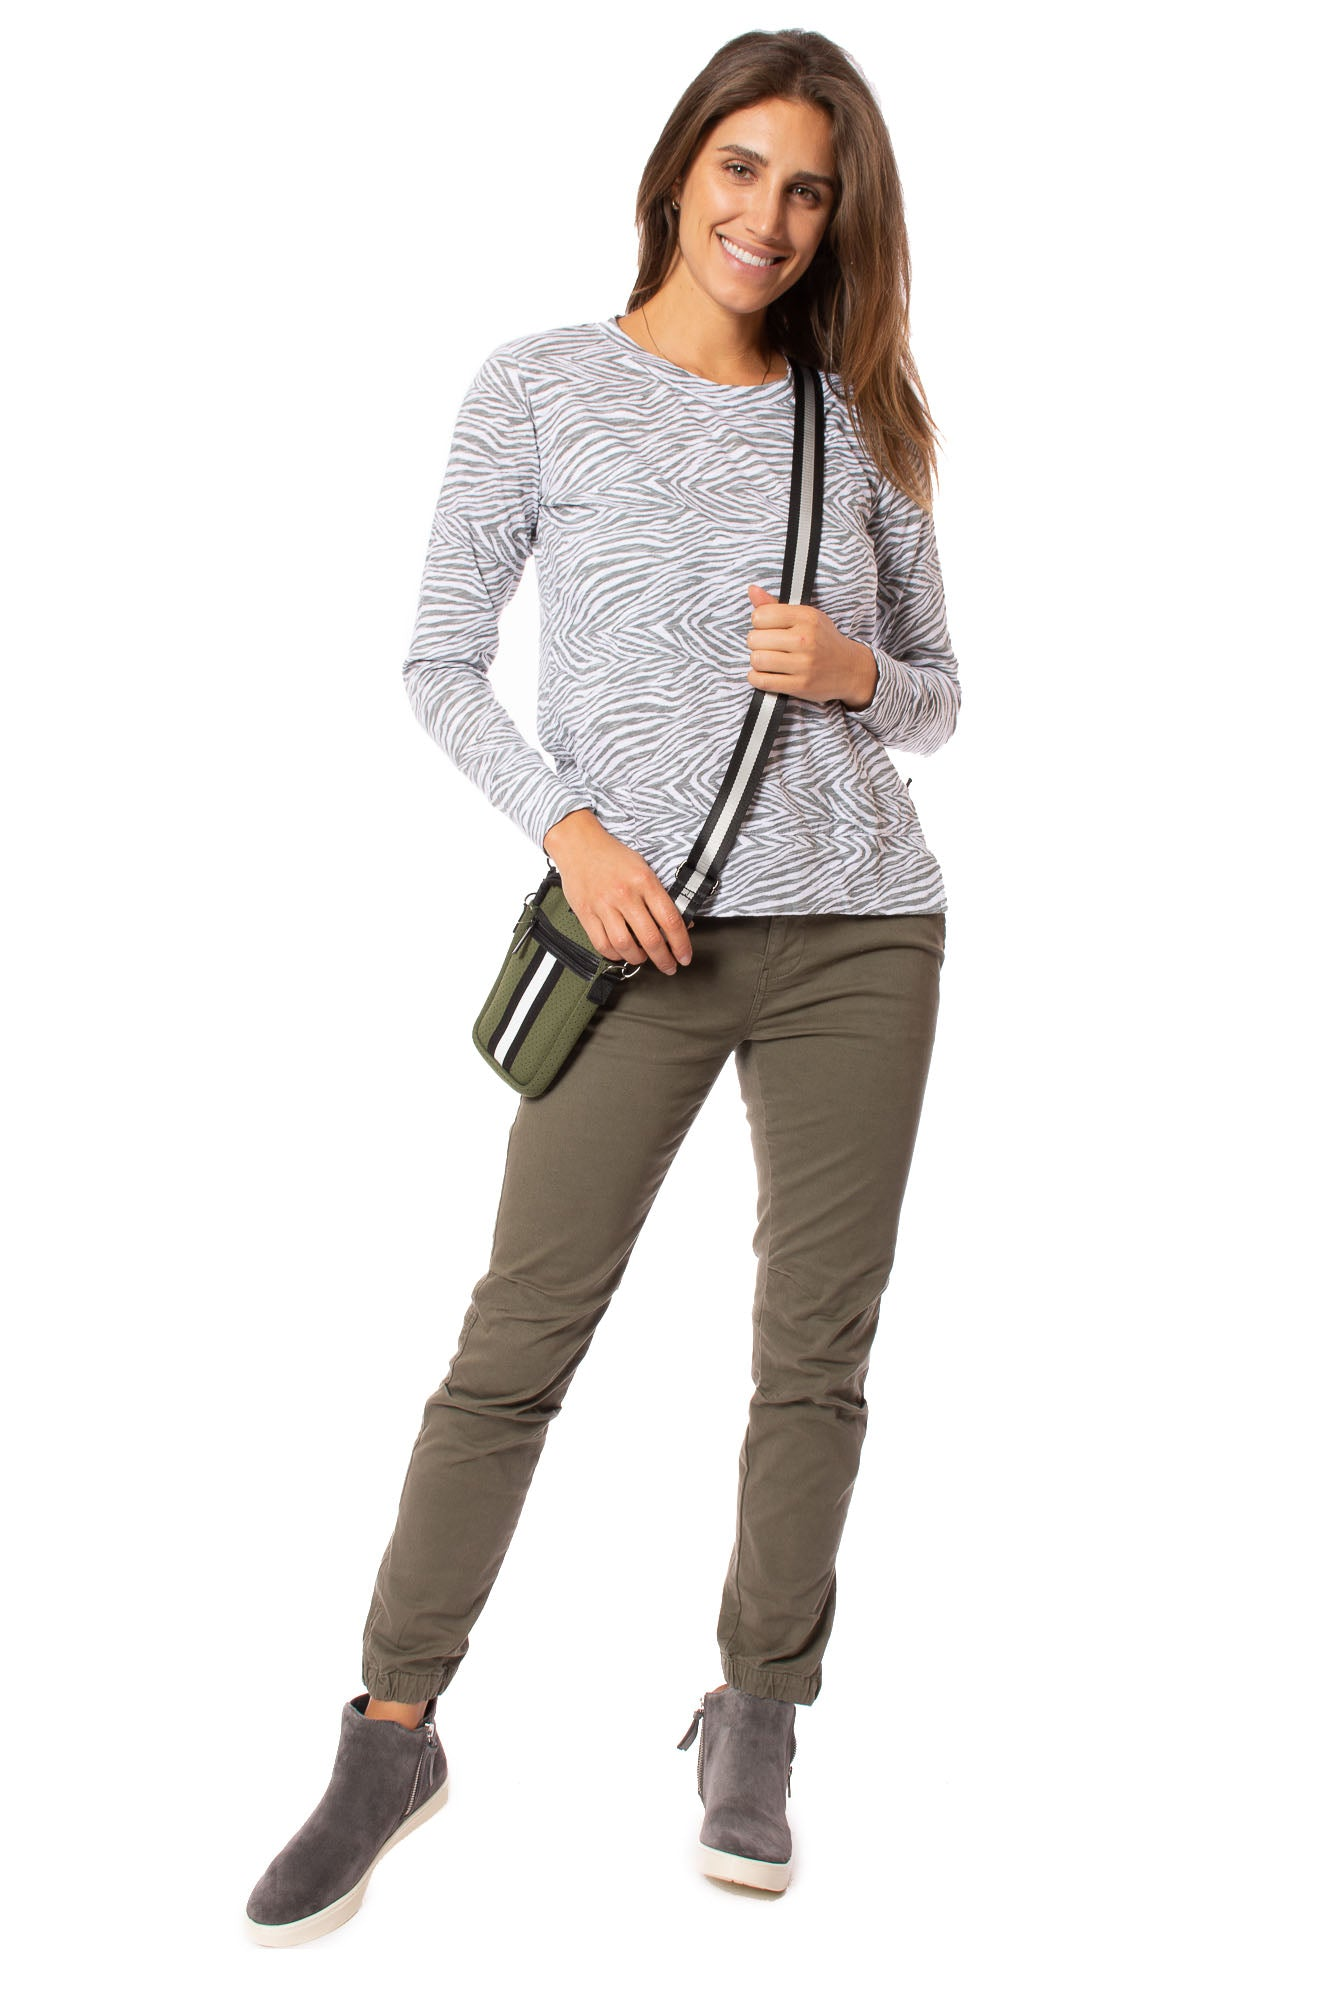 Bobi - Long Sleeve Crew Neck W/High-Low Side Slit (54A-50102, White & Gray Zebra Print)